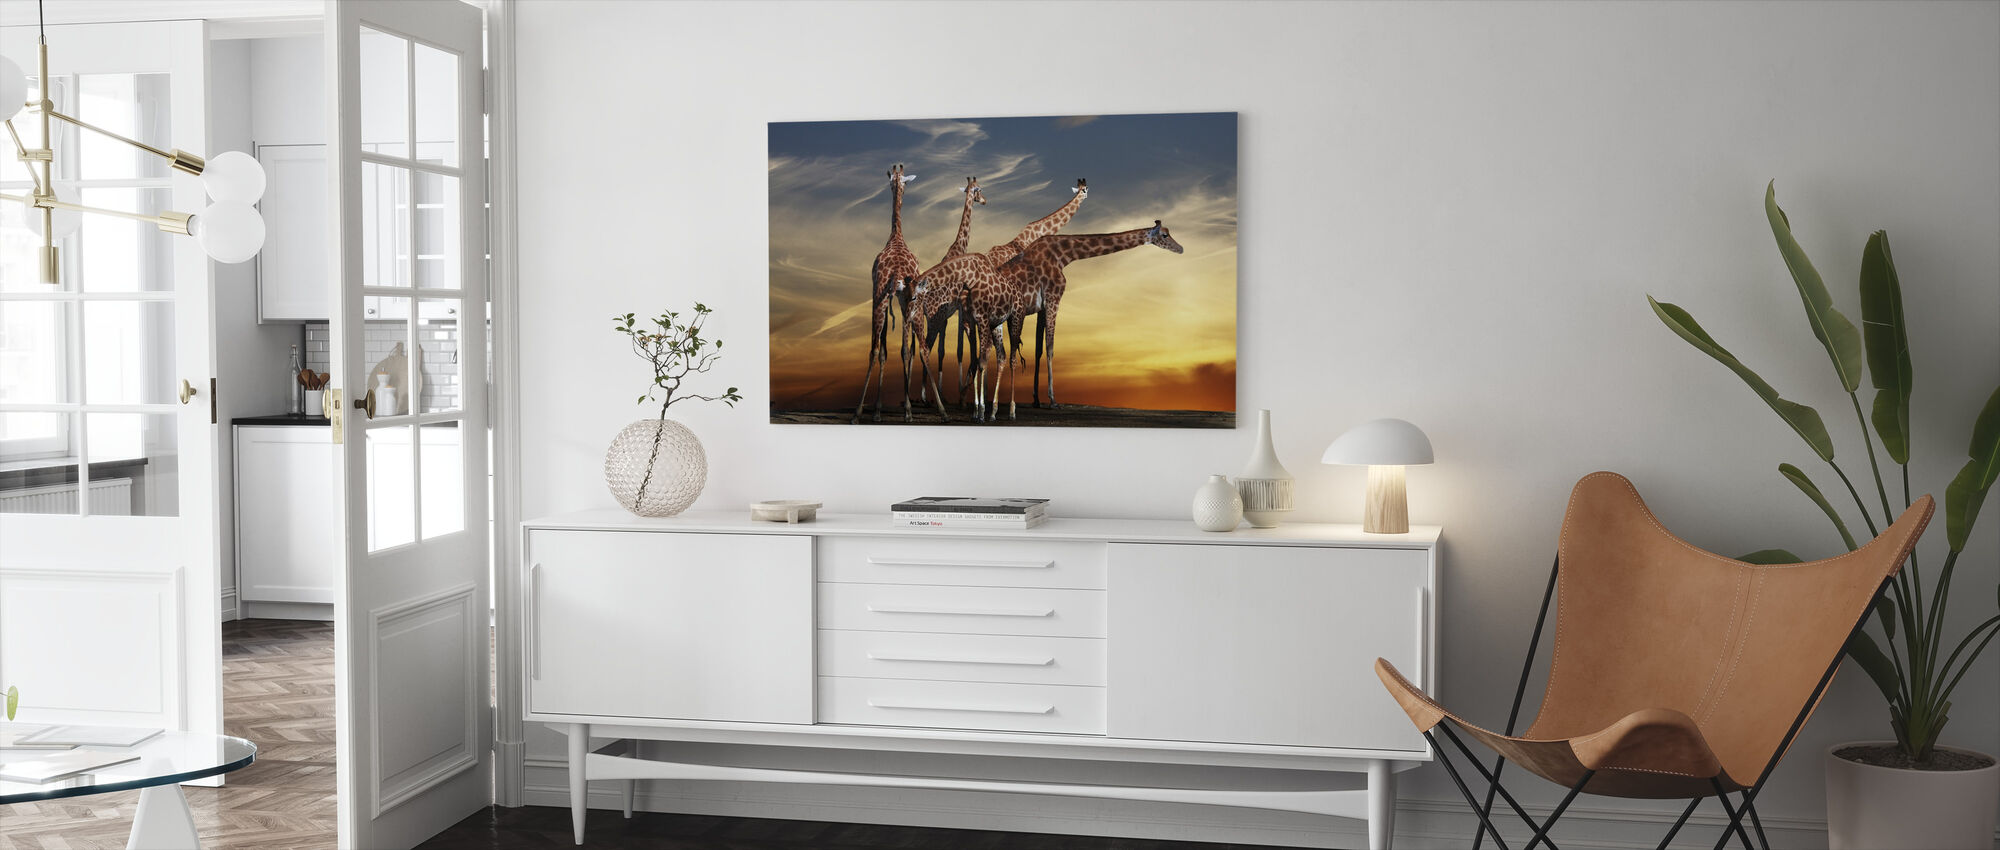 Giraffes and a View - Canvas print - Living Room